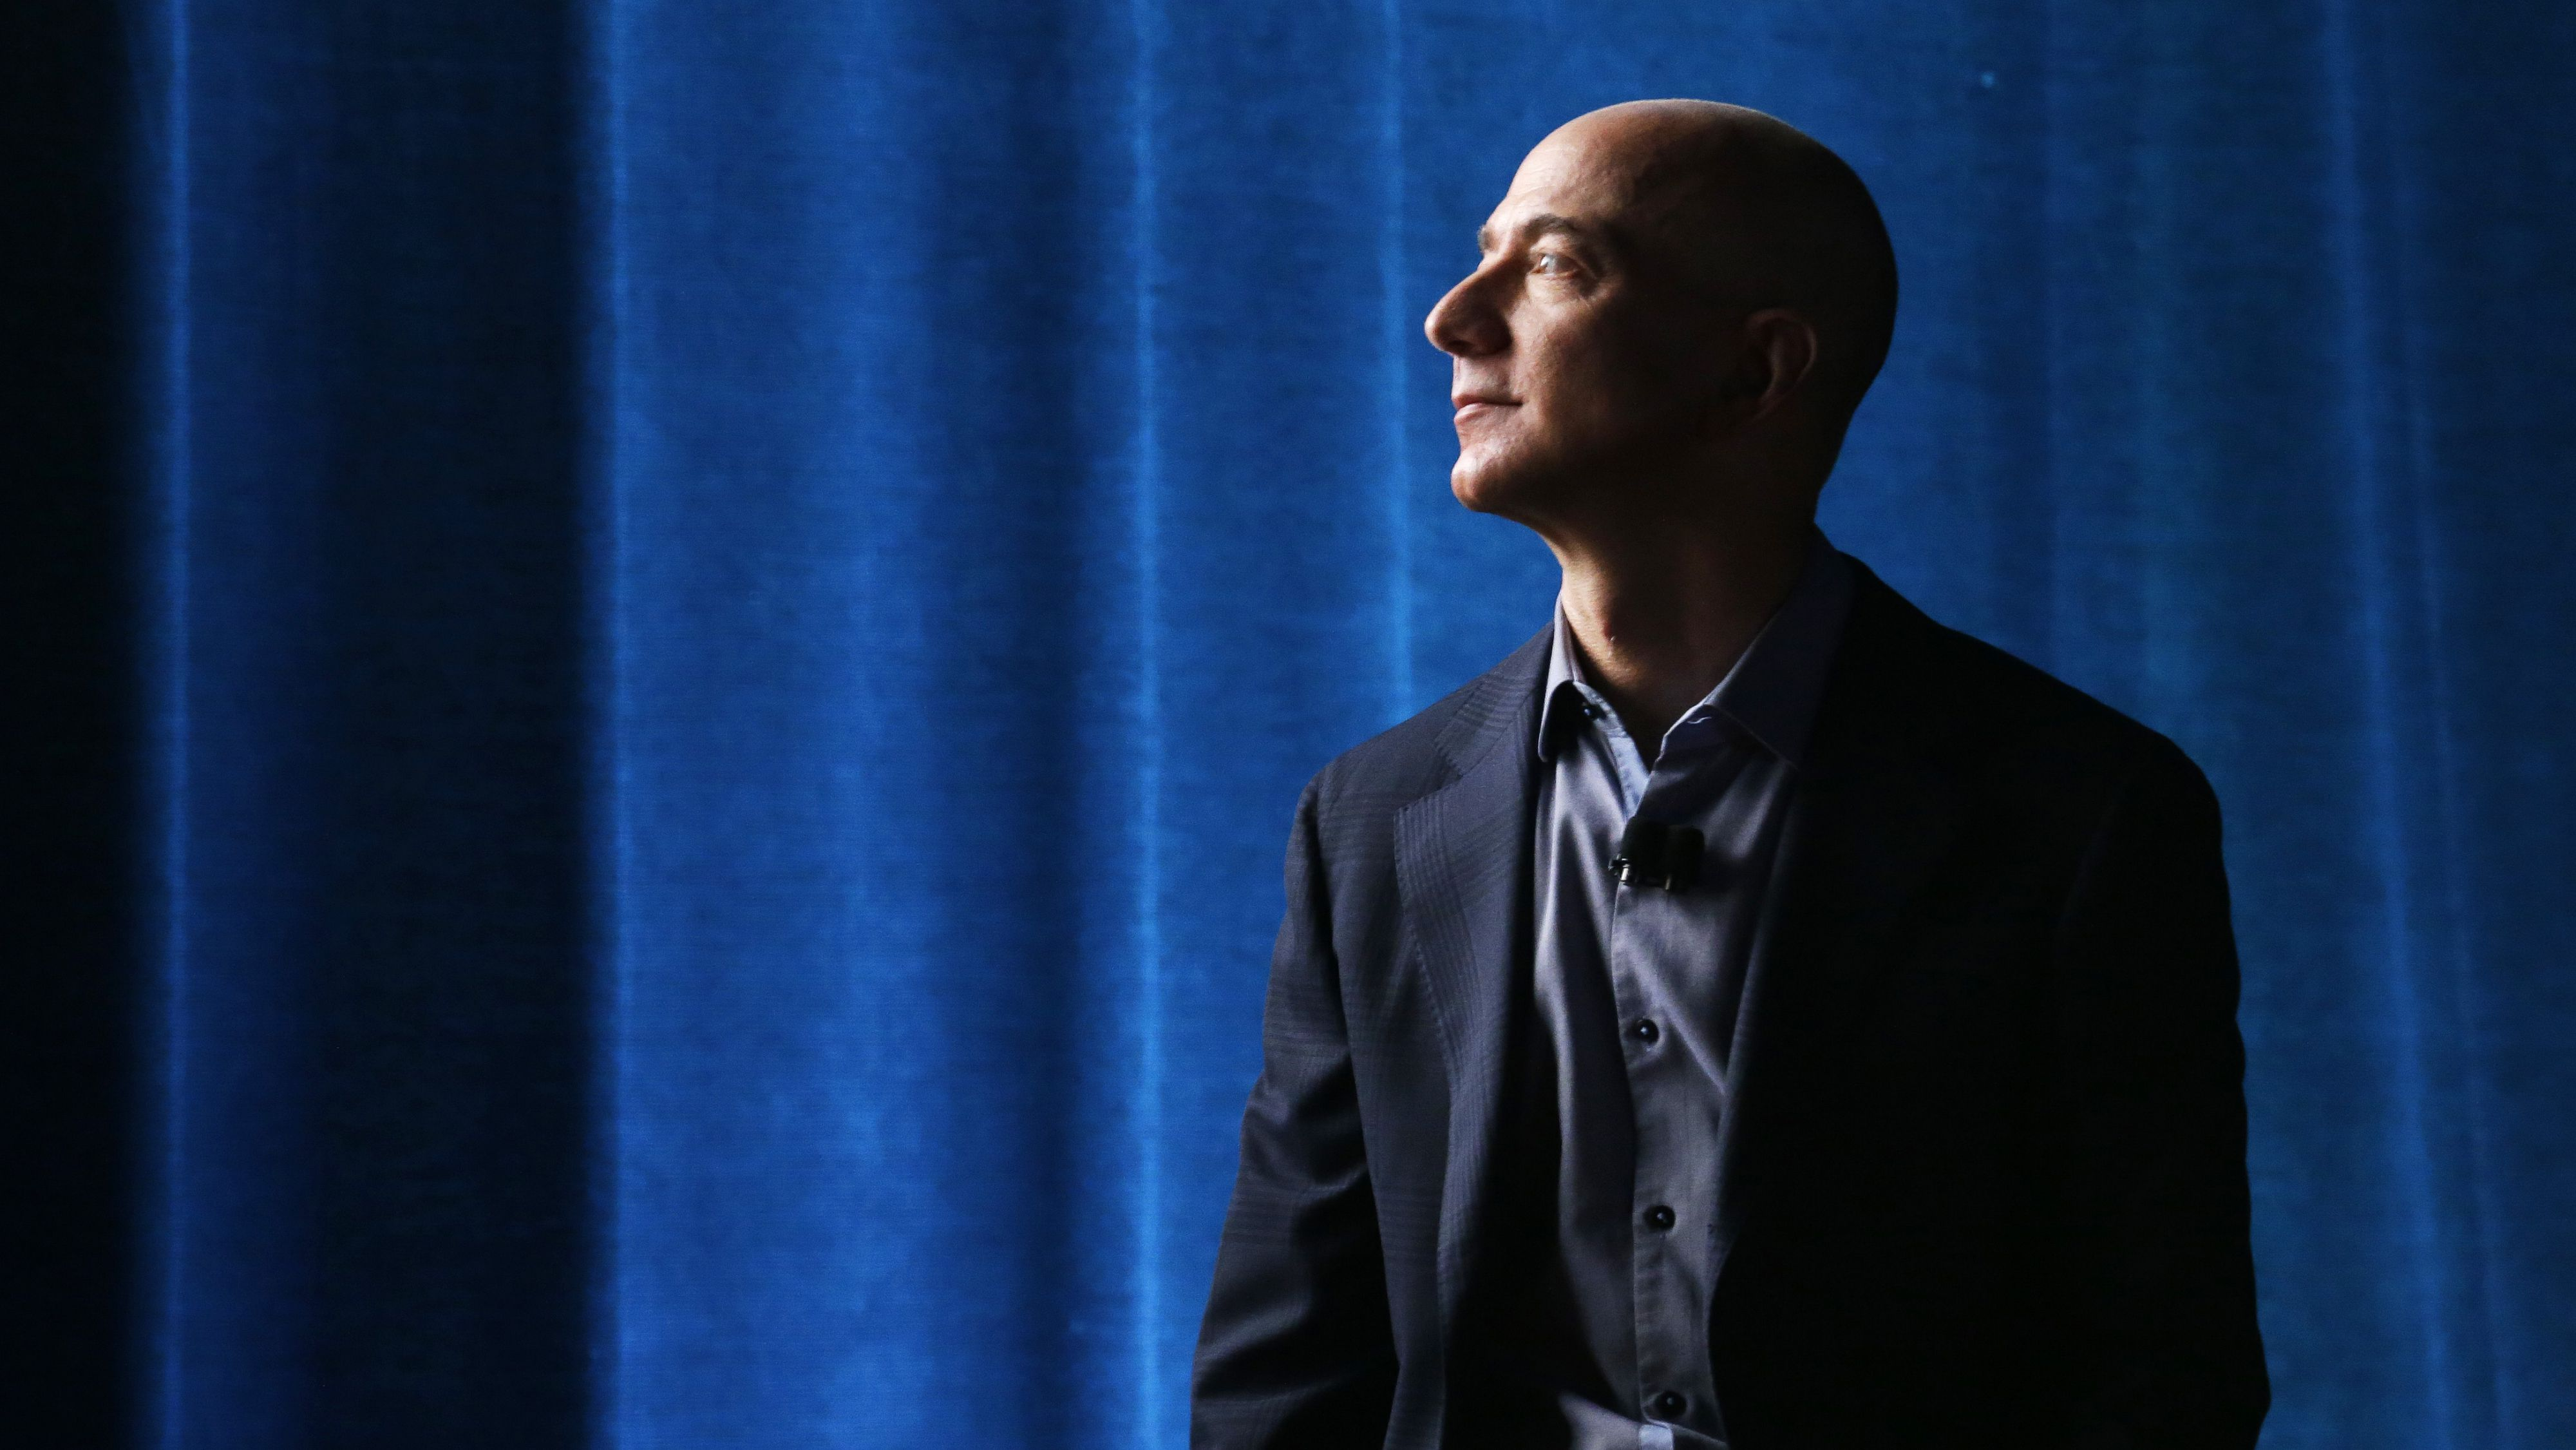 Jeff-Bezos-Worlds-Best-CEO-Harvard-Business-Review